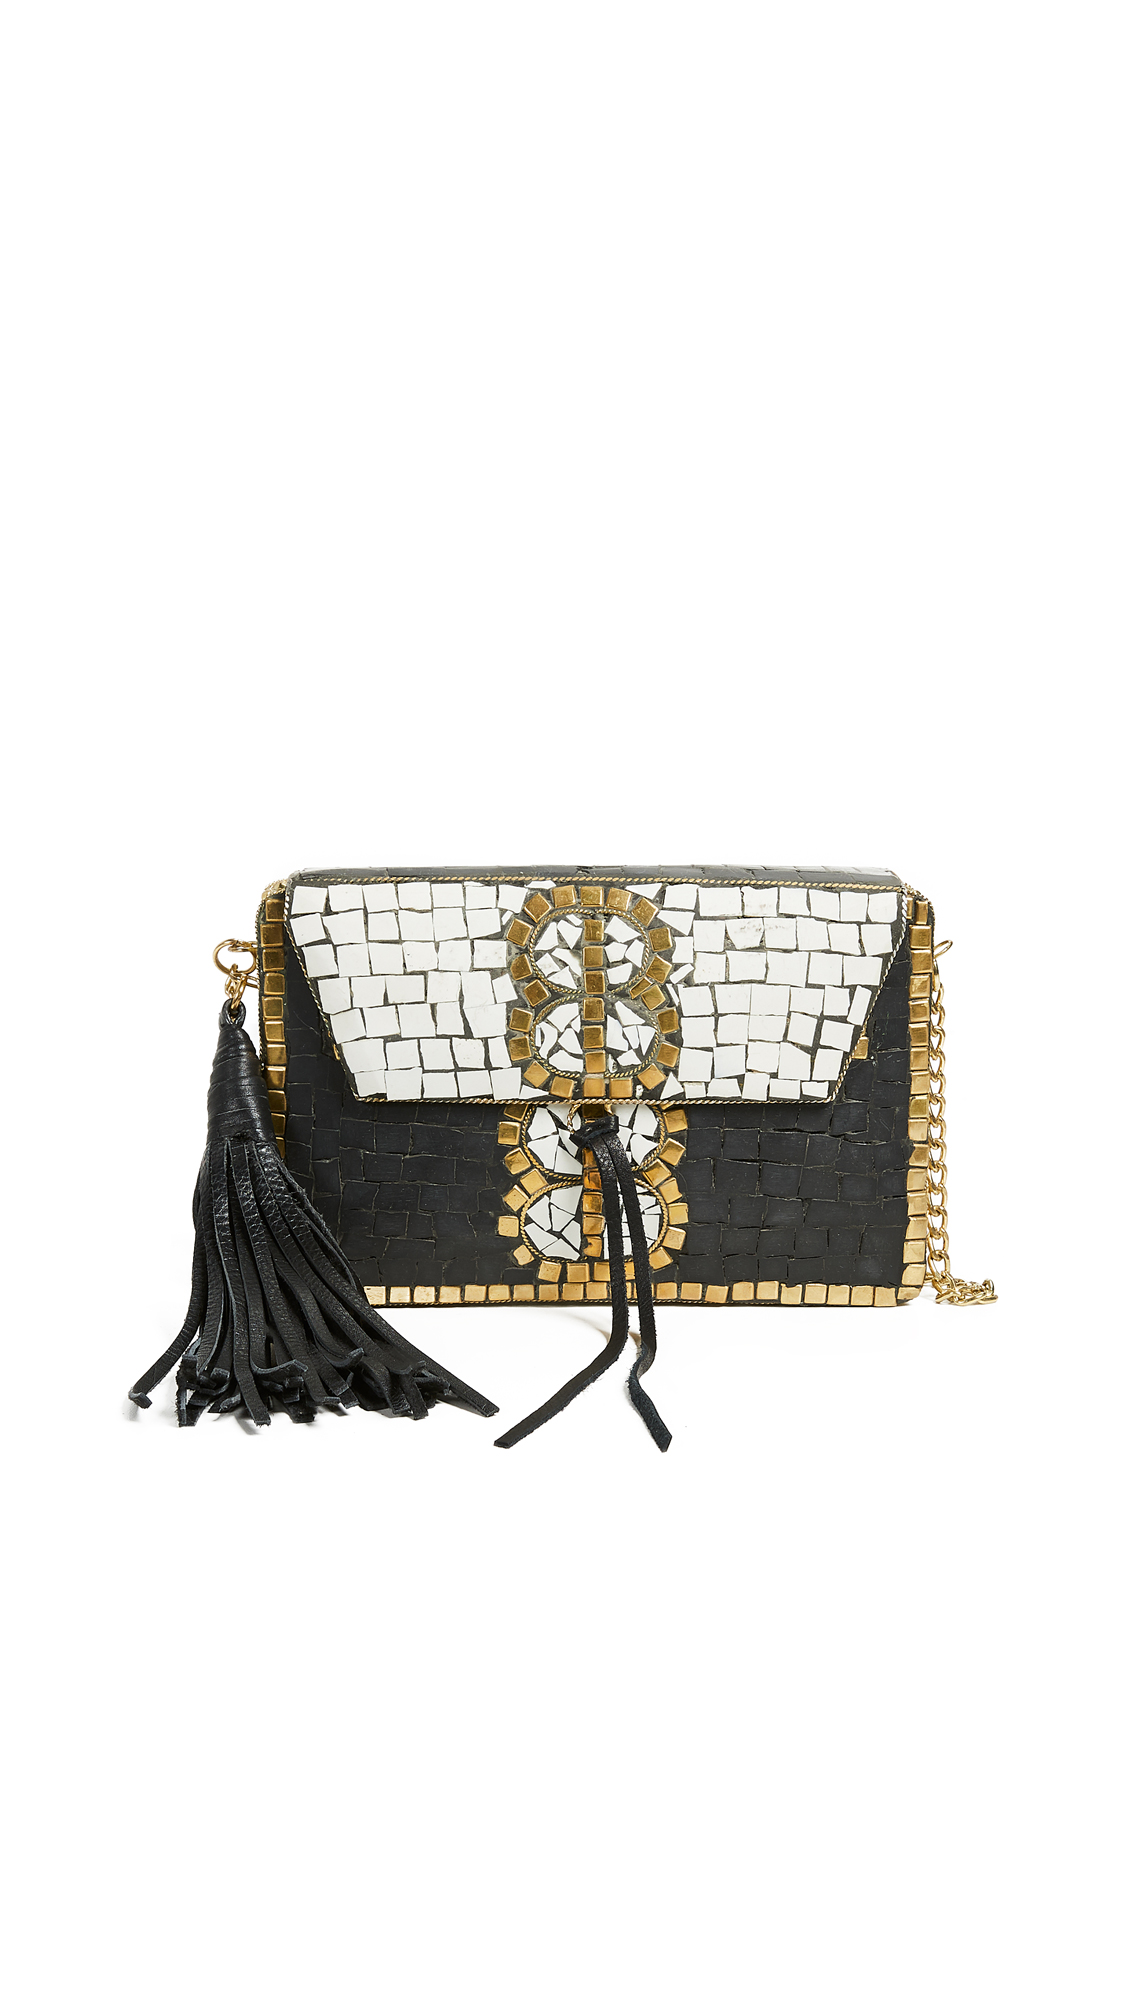 Sam Edelman Saksia Mosaic Box Clutch In Black/White Gold